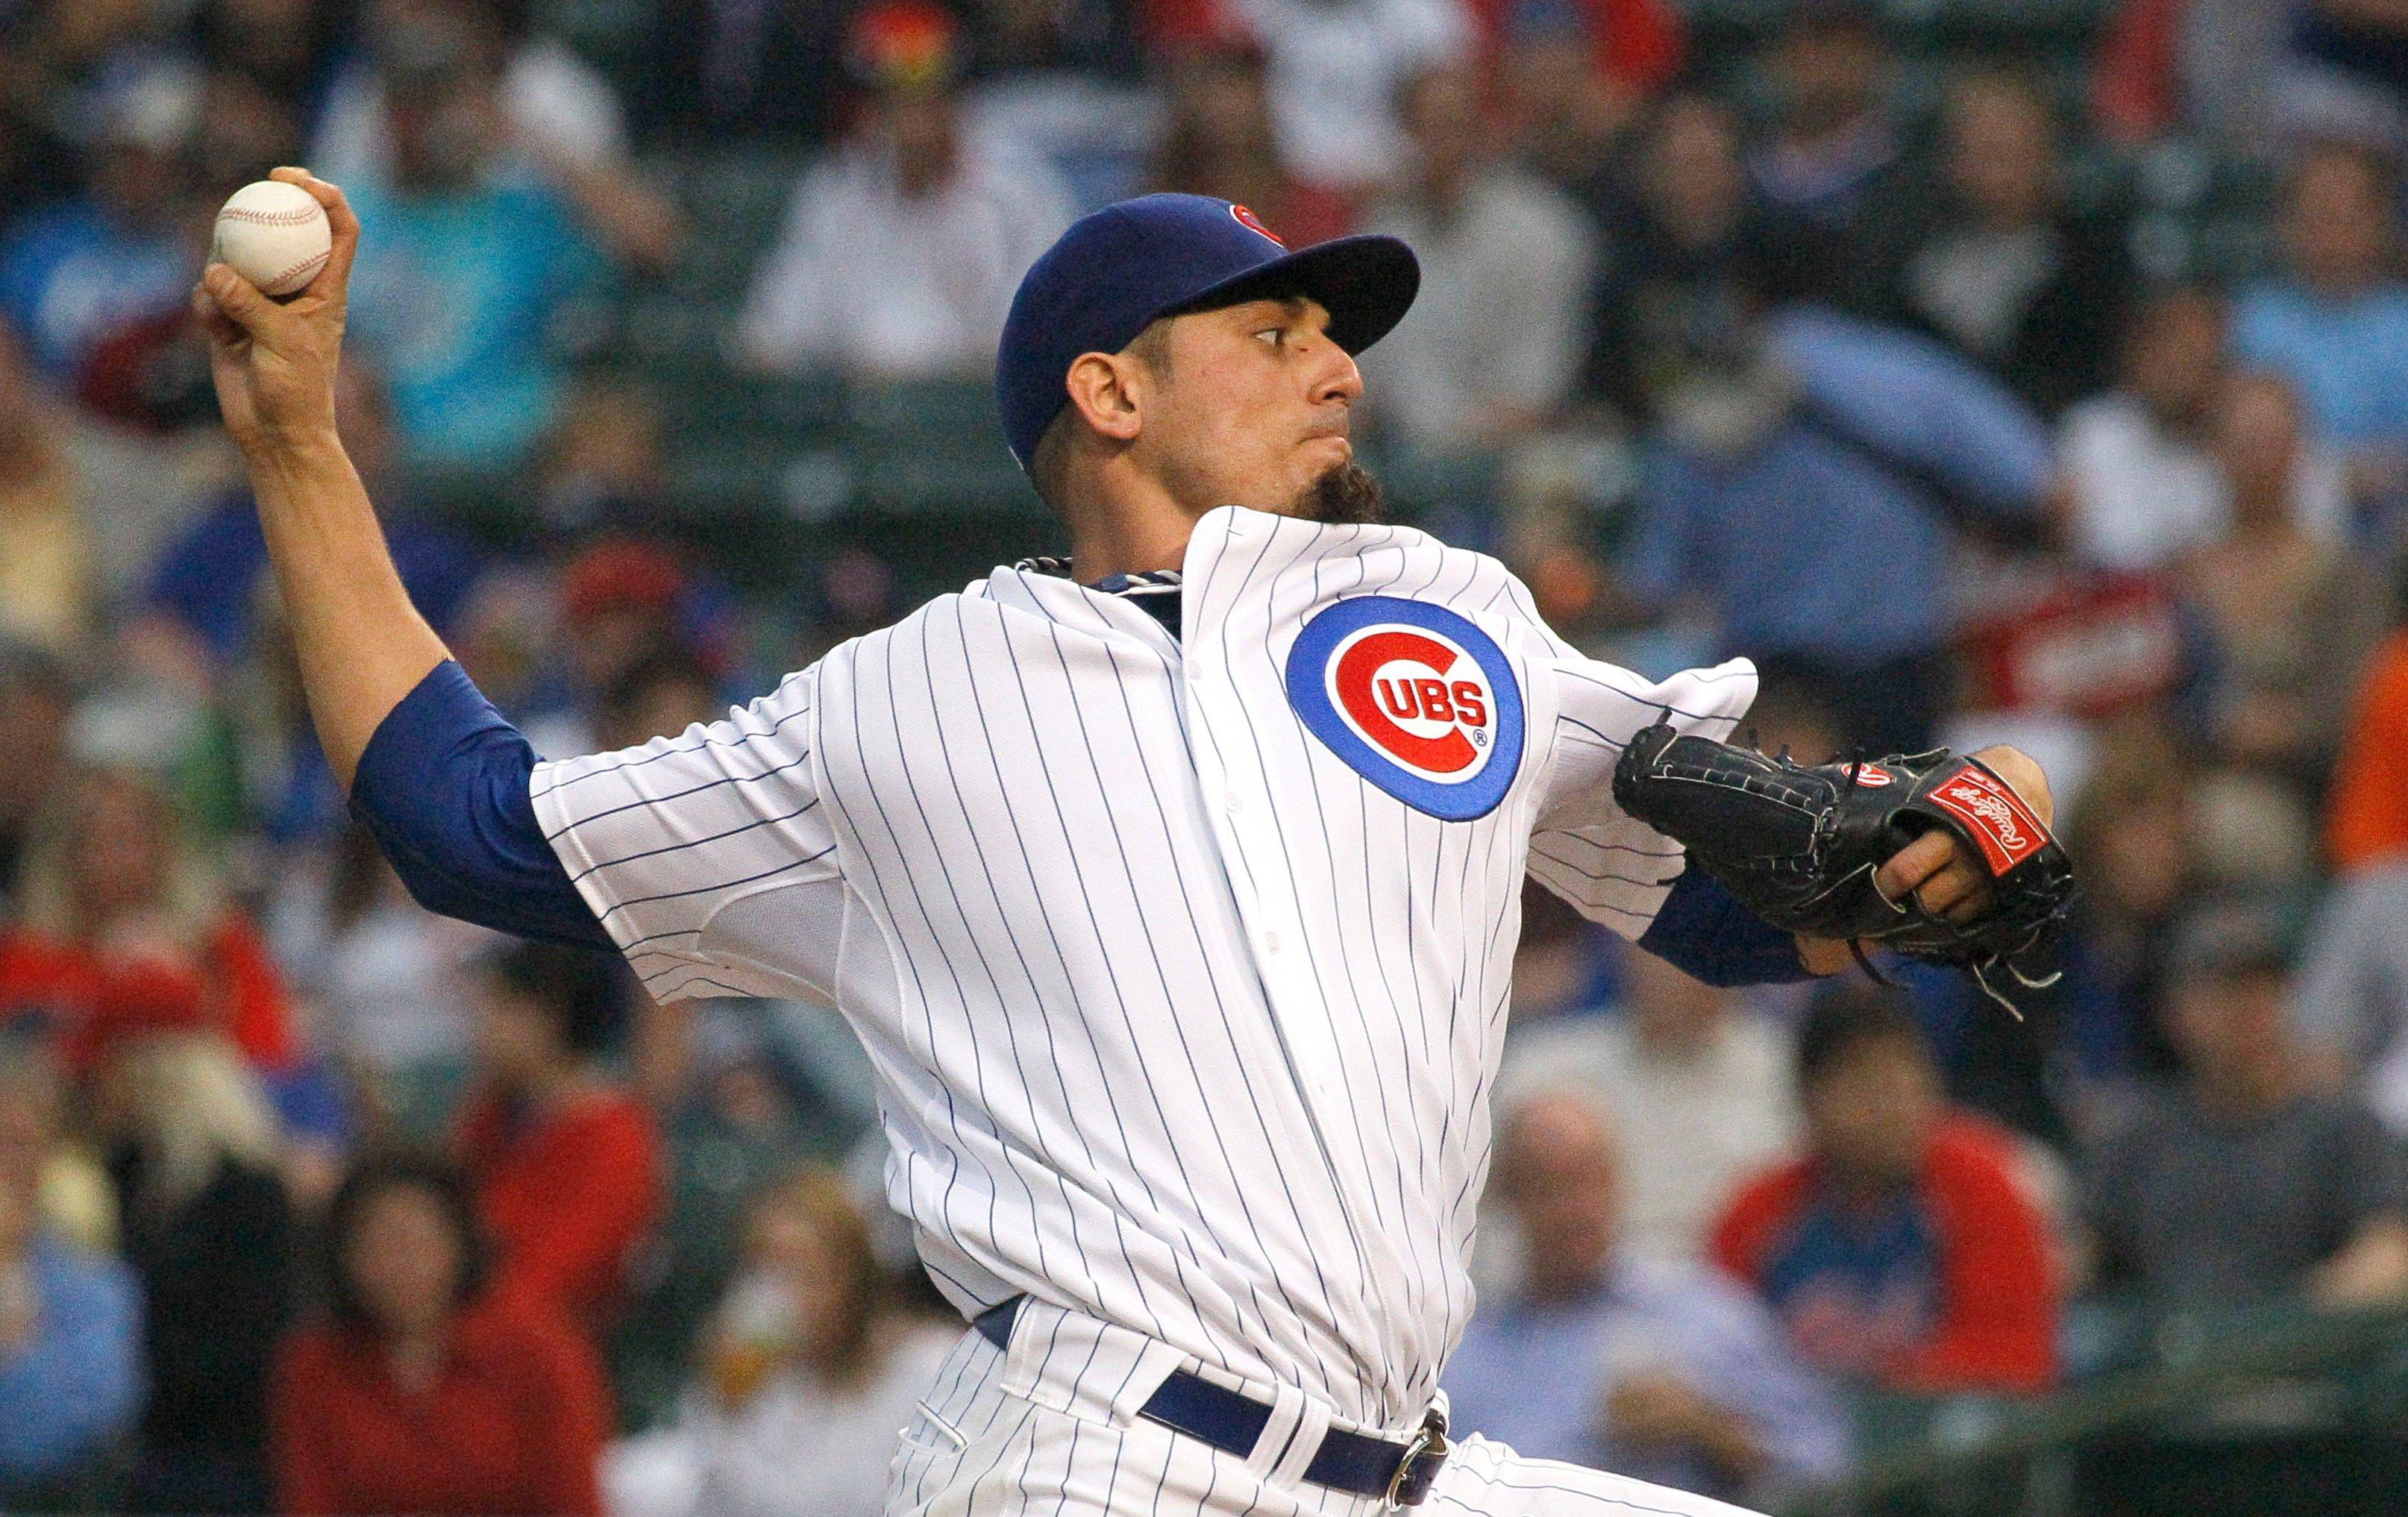 Cubs' rotation in flux; RHP Garza scratched